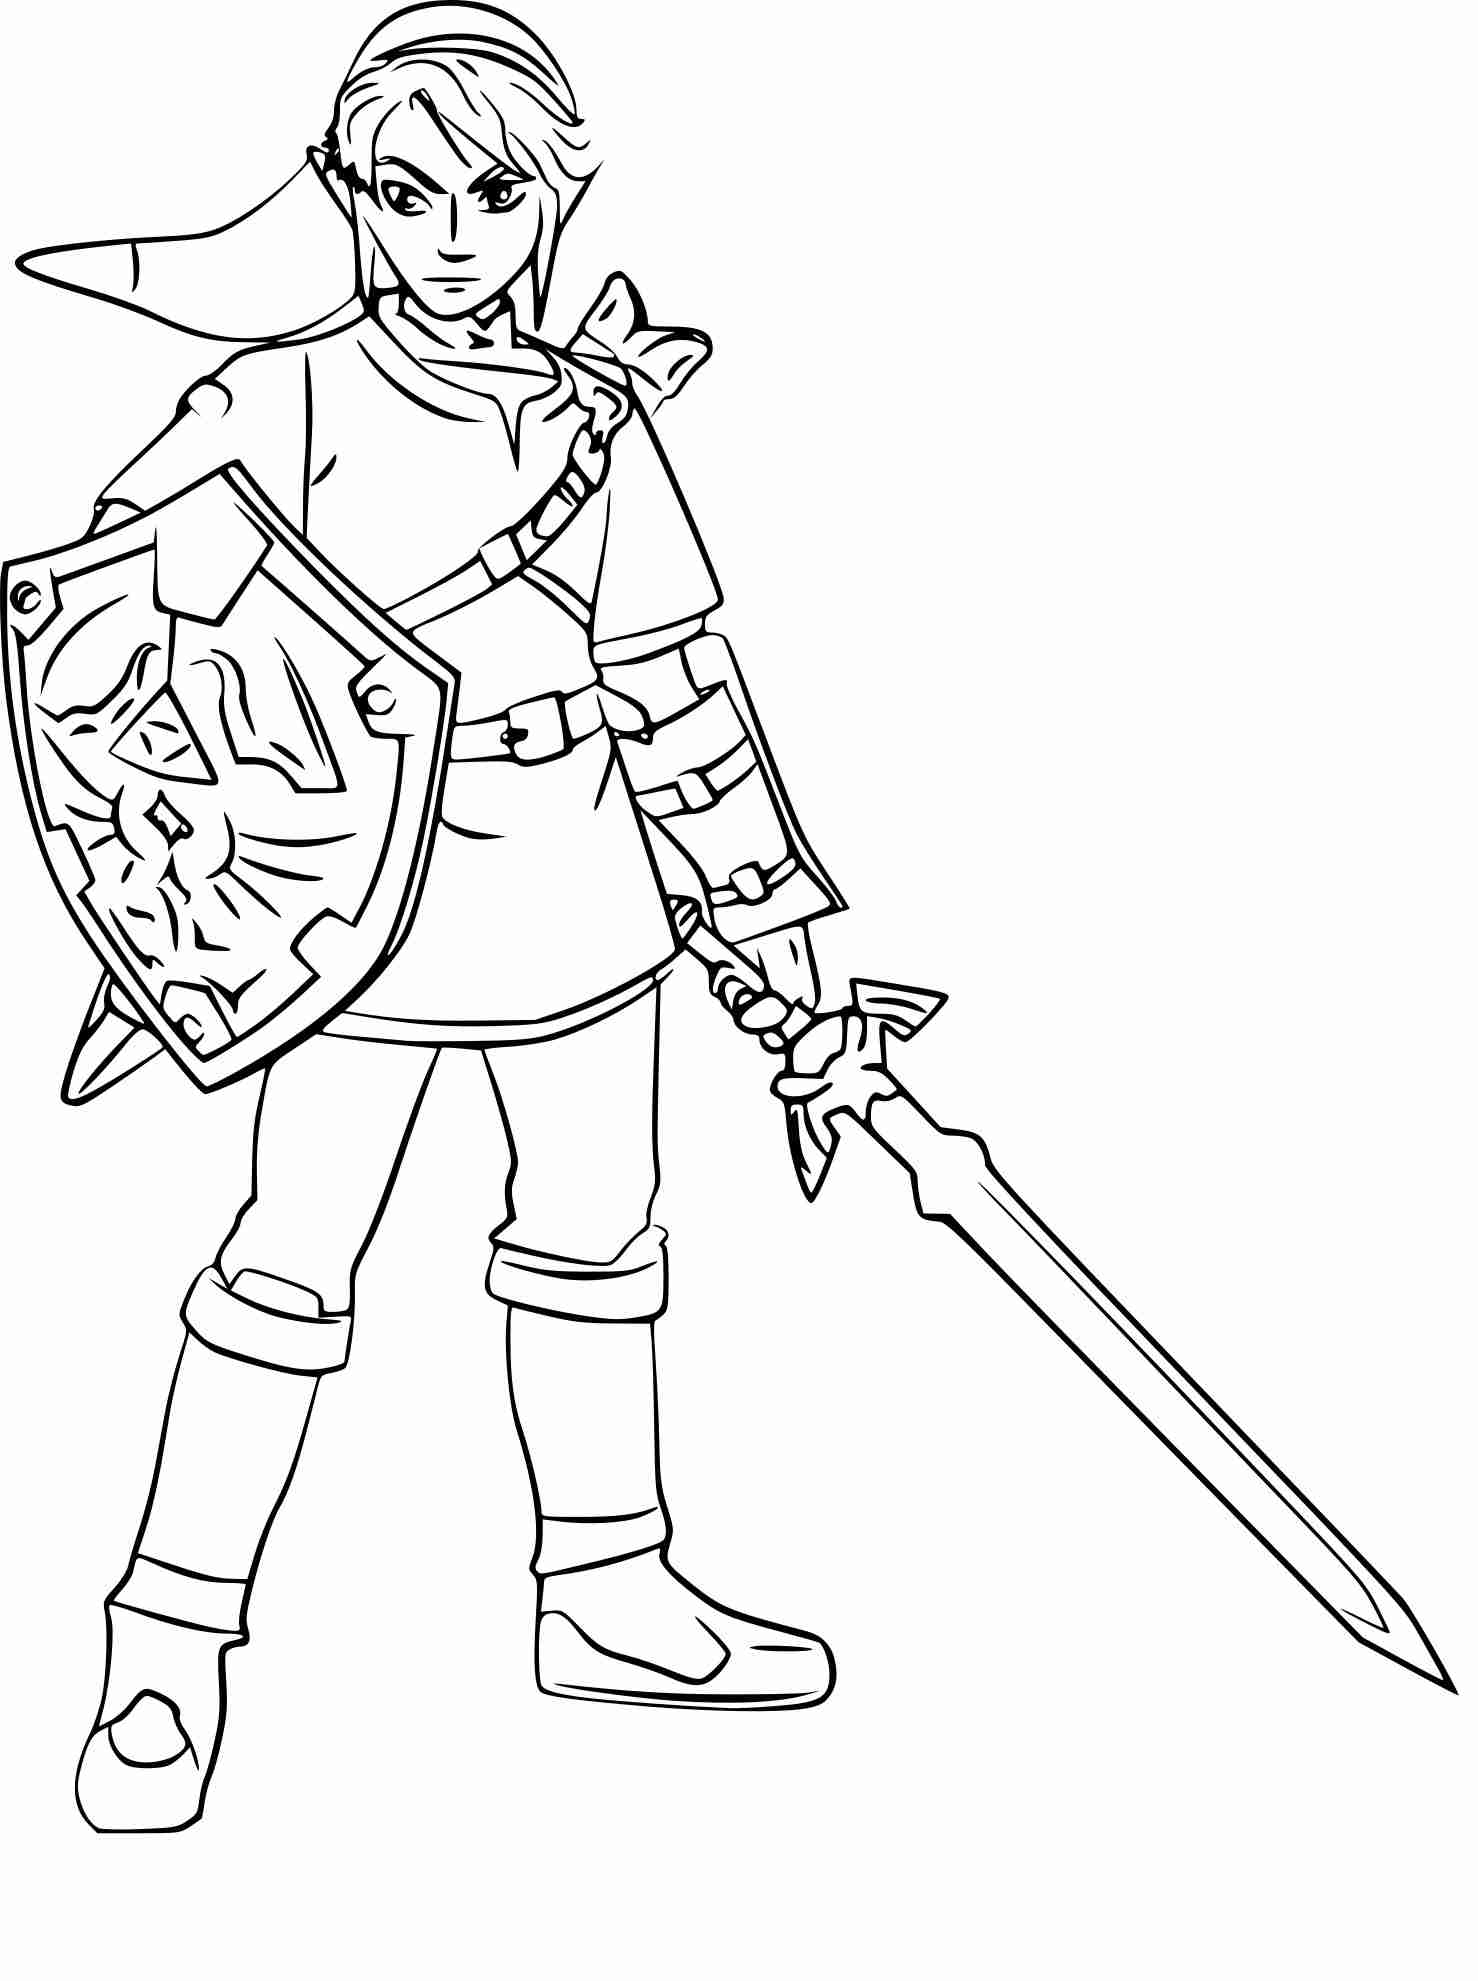 The Legend Of Zelda Coloring Pages At Getdrawings Com Free For